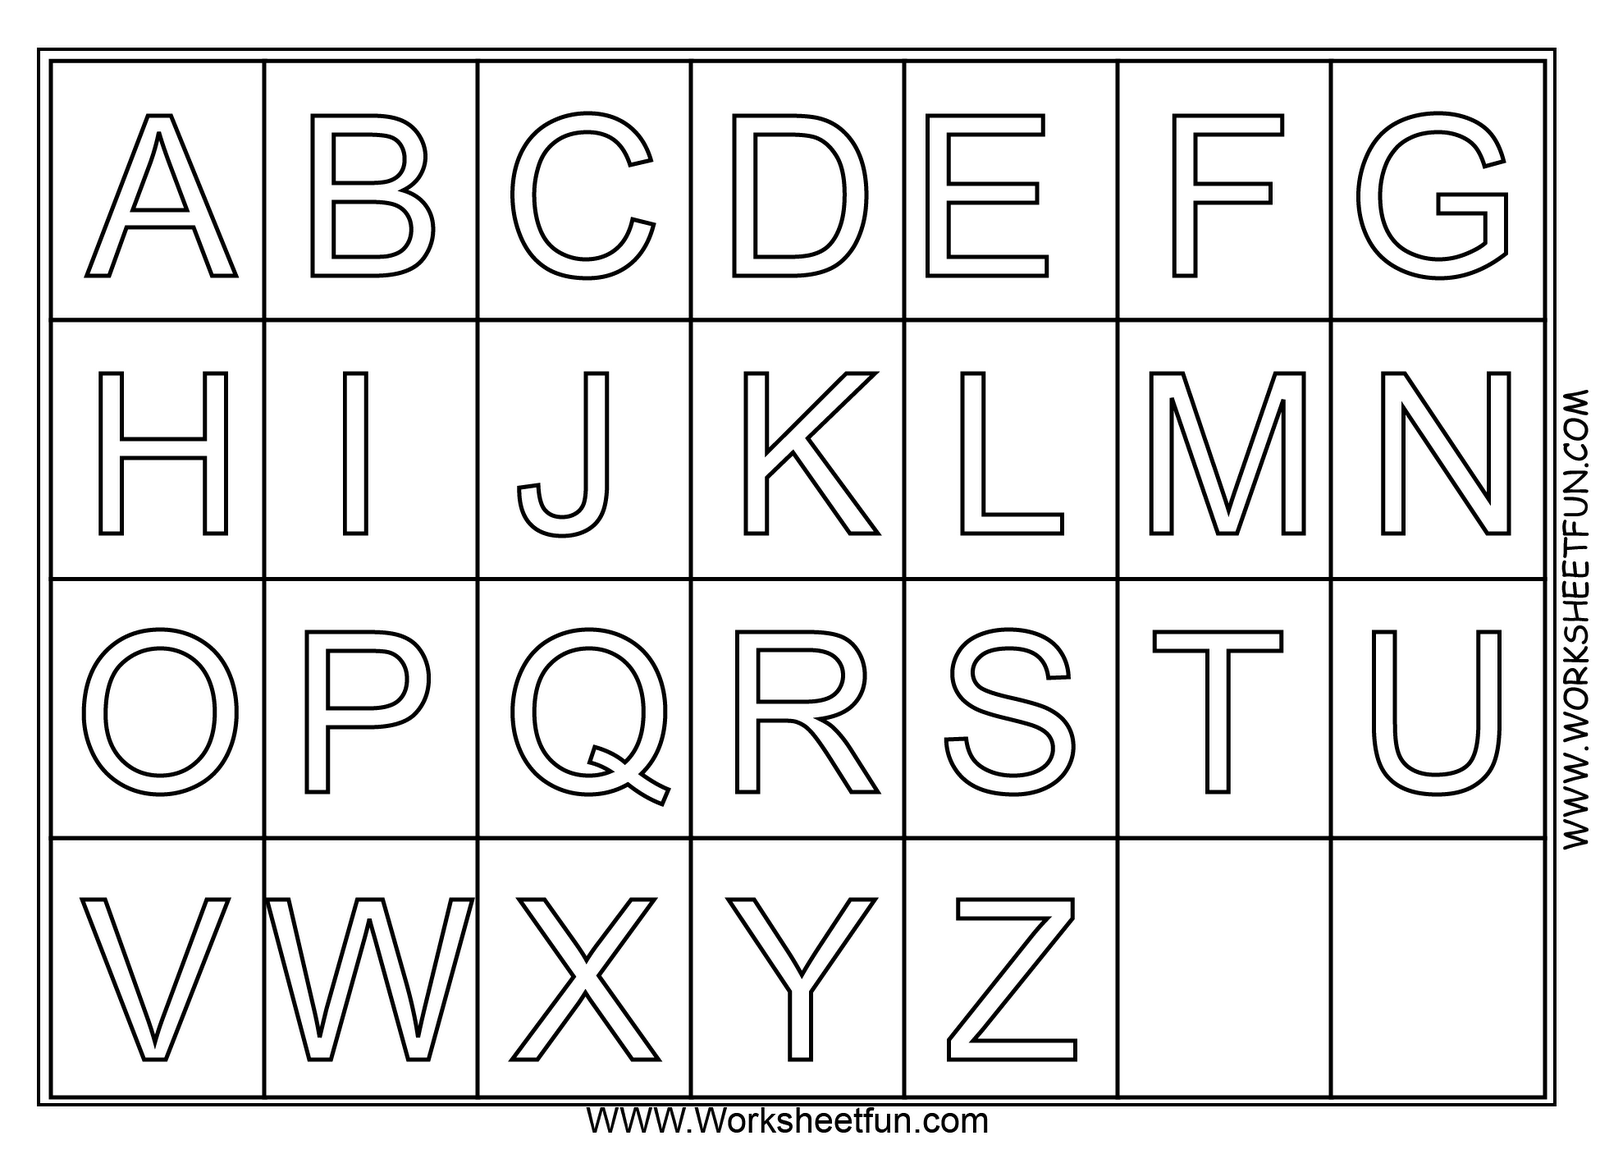 Worksheet Alphabet Letters For Kindergarten coloring worksheets and on pinterest